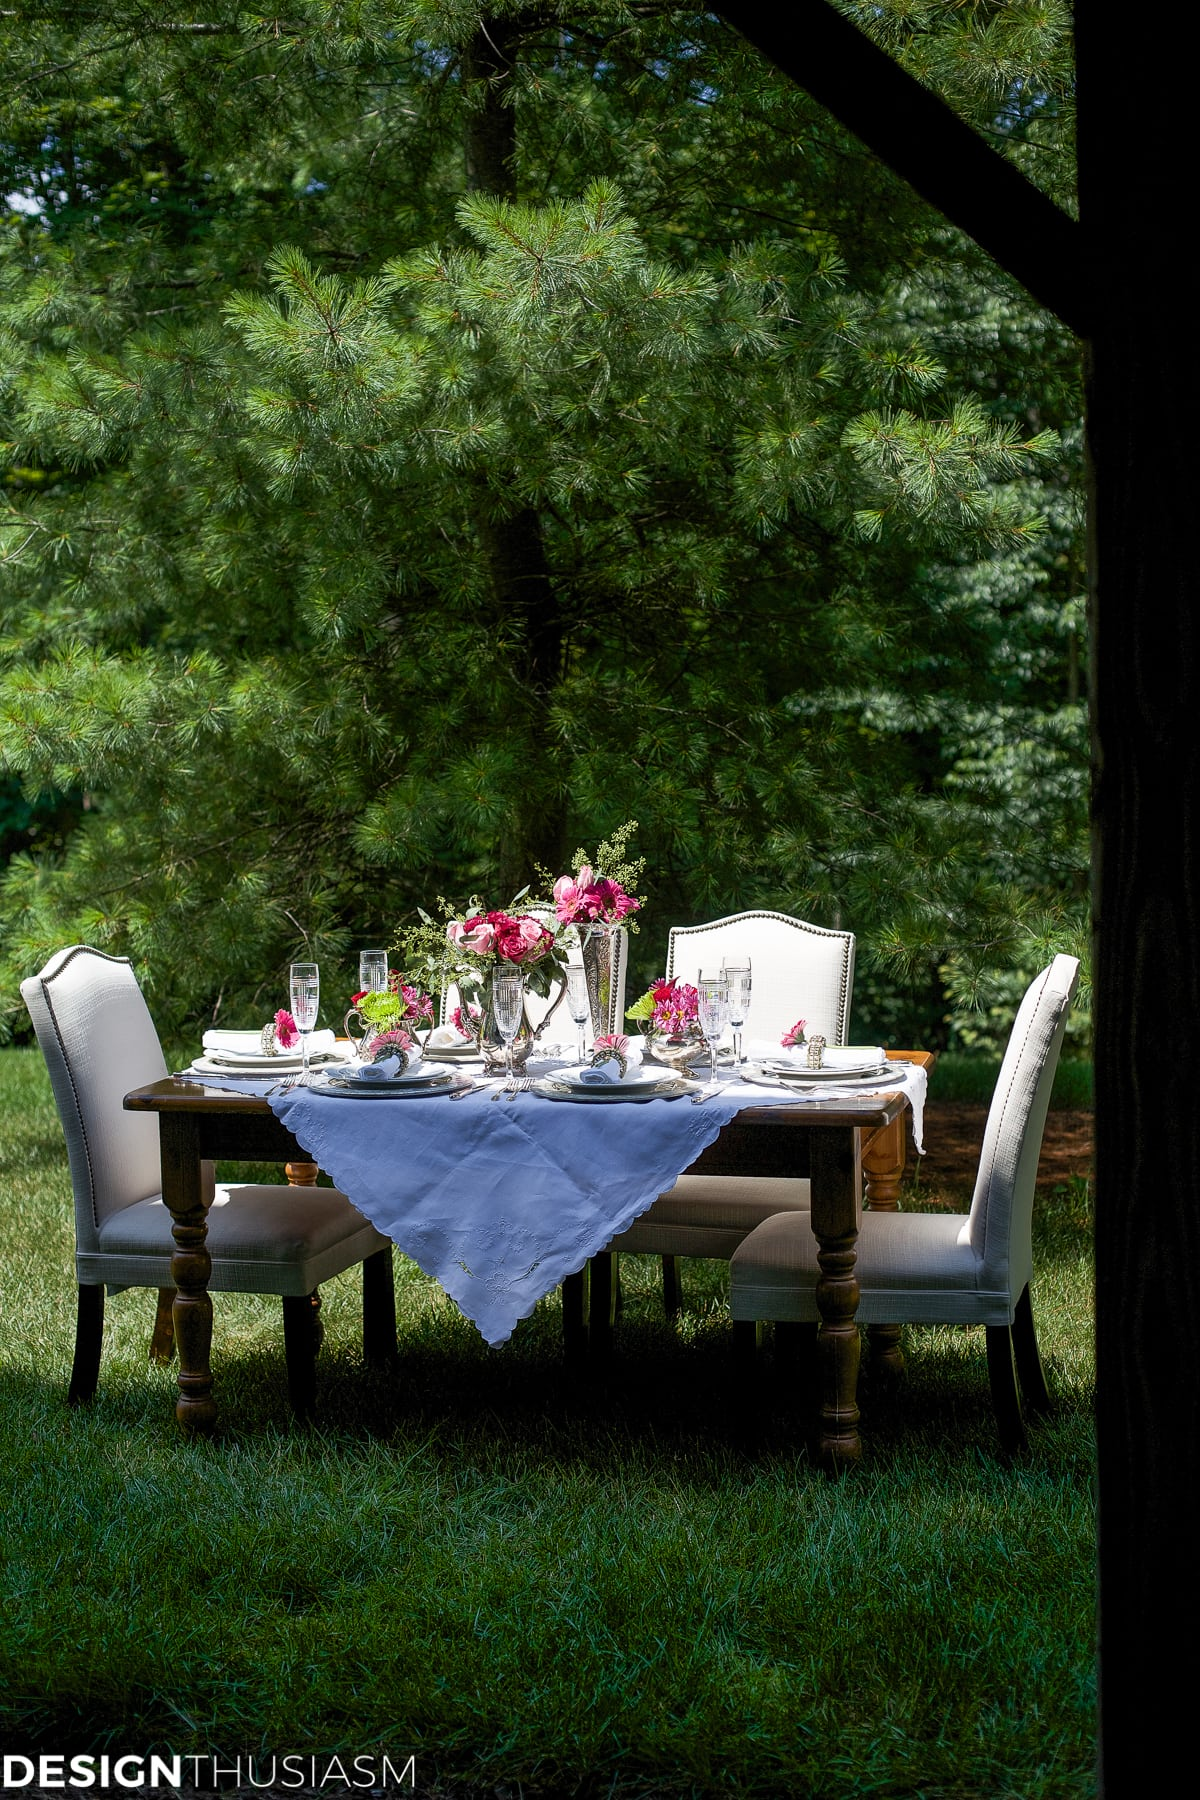 How to Set a Special Outdoor Table with Ordinary White Dishes - designthusiasm.com